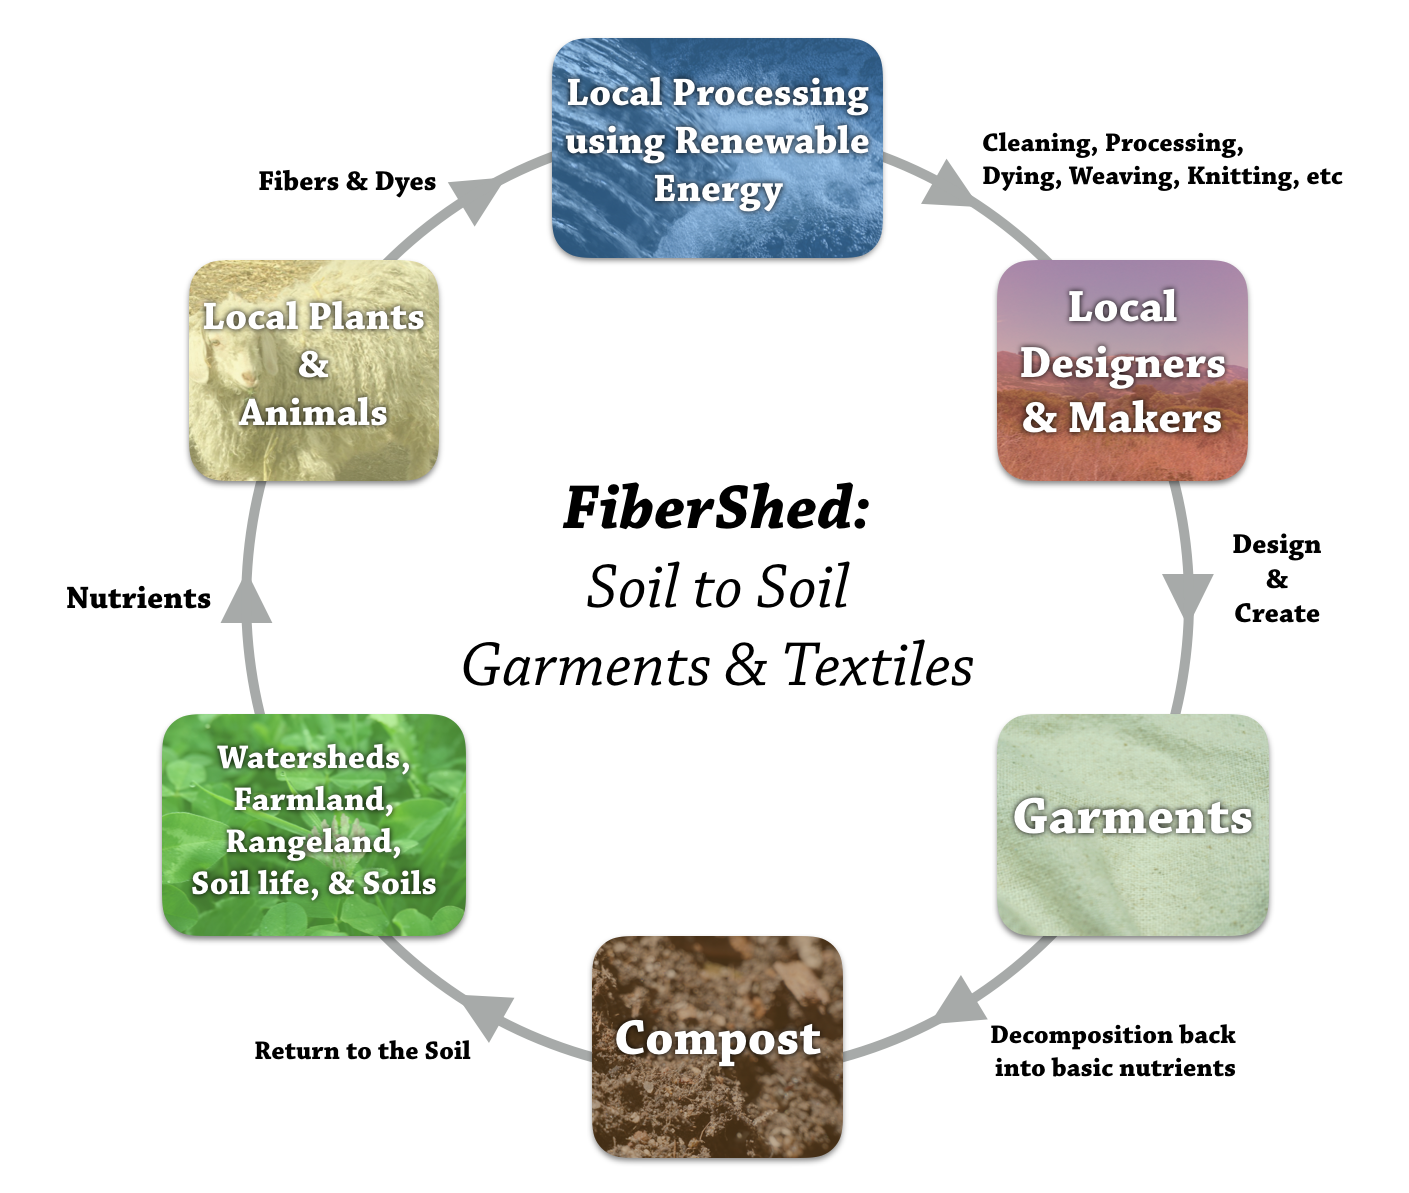 The Fibershed is a non-profit organization dedicated to helping communities and business establish and maintain a localized soil to soil garment and textile industry. It is truly a  permaculture non-profit. Image from The Permaculture Student 2, by Matt Powers.